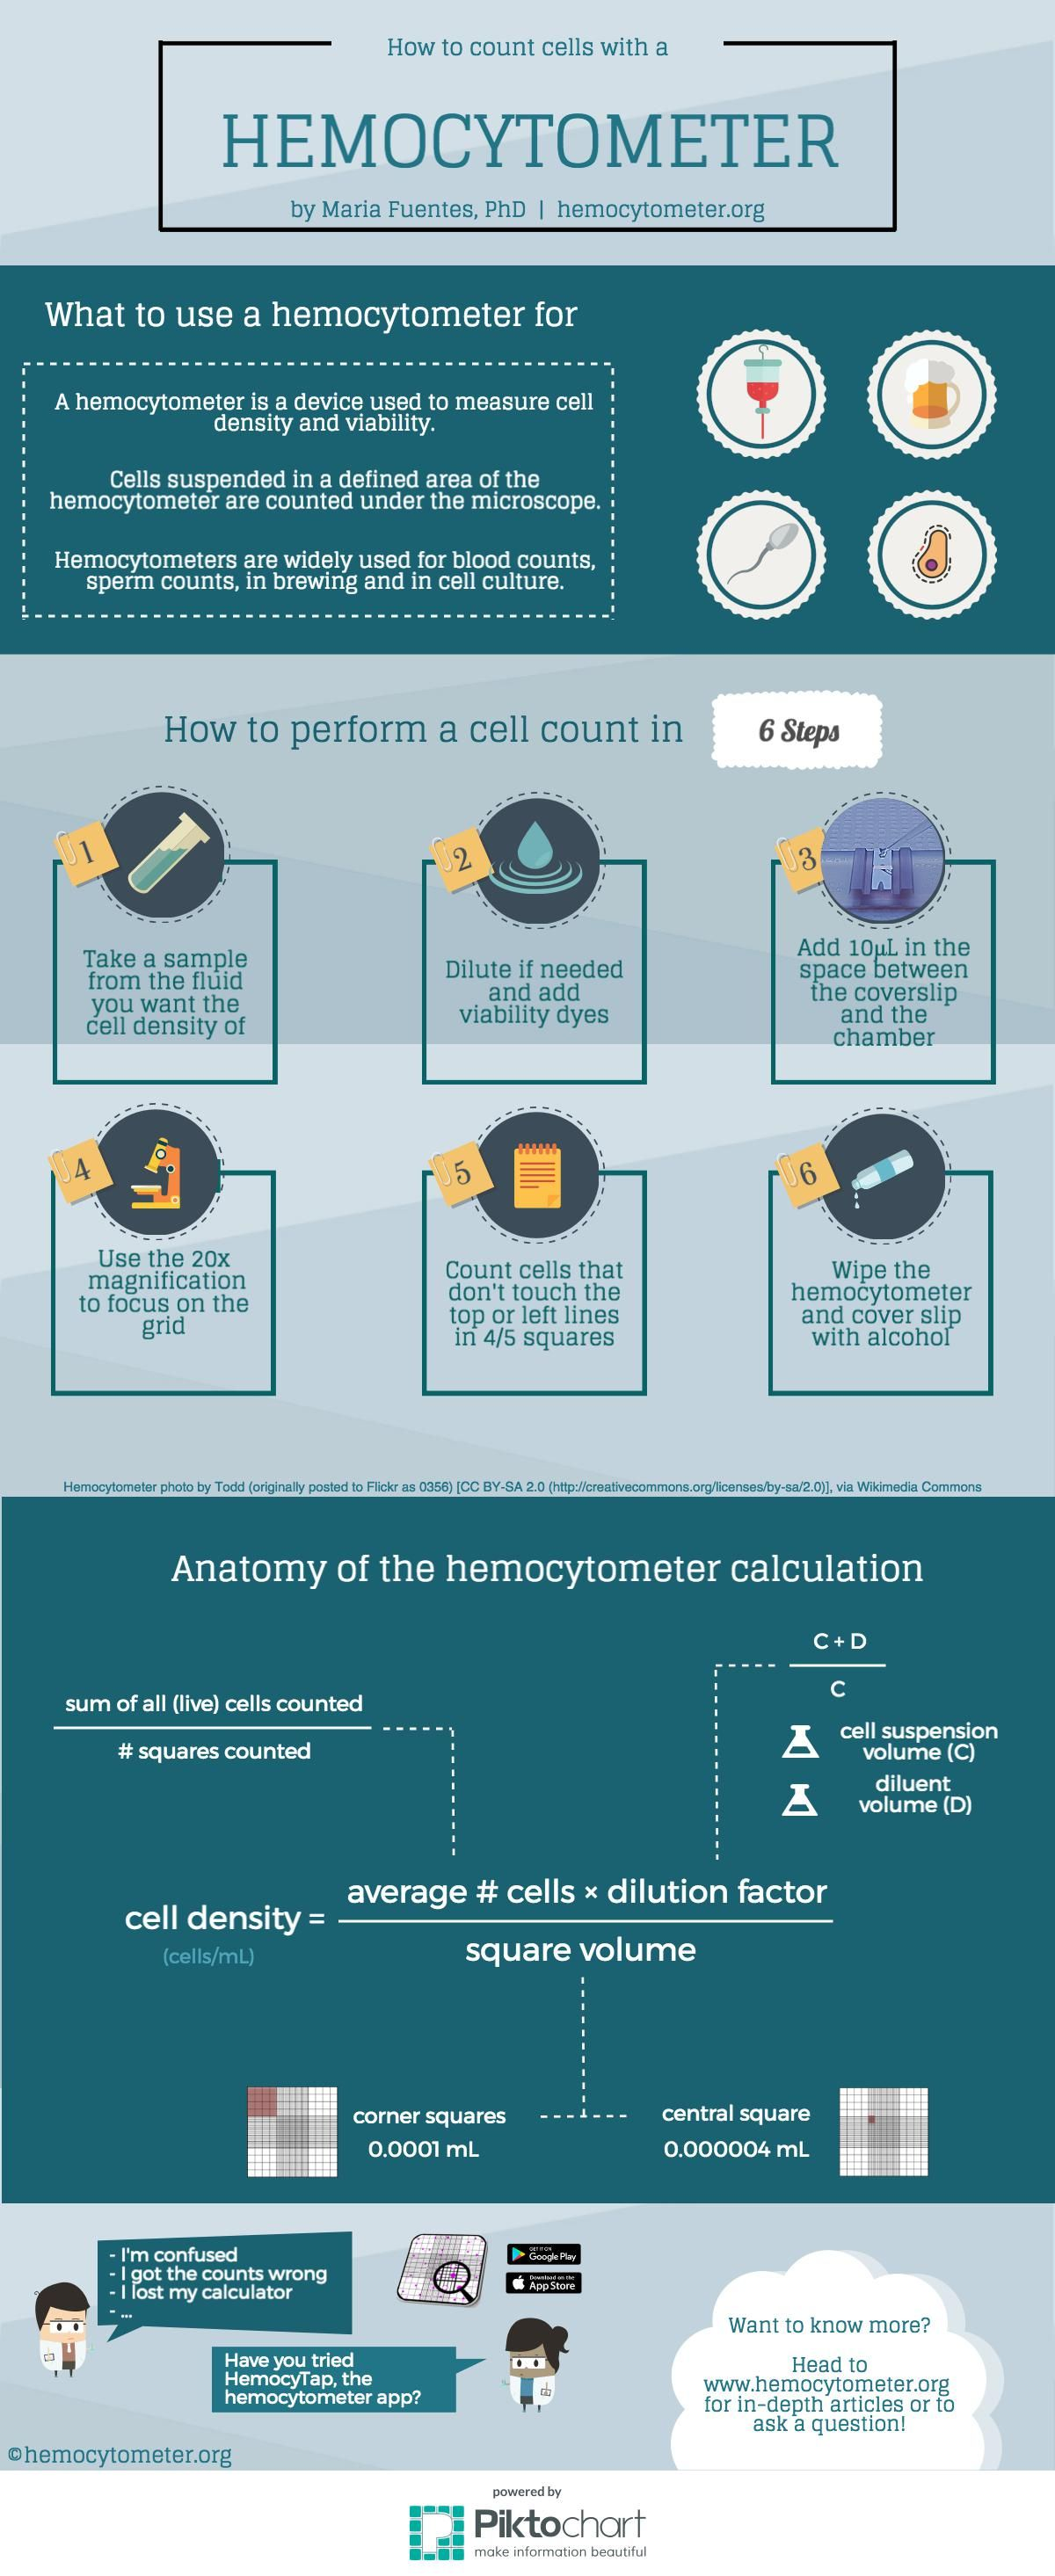 Cell counting with a hemocytometer in 6 easy steps | Cell